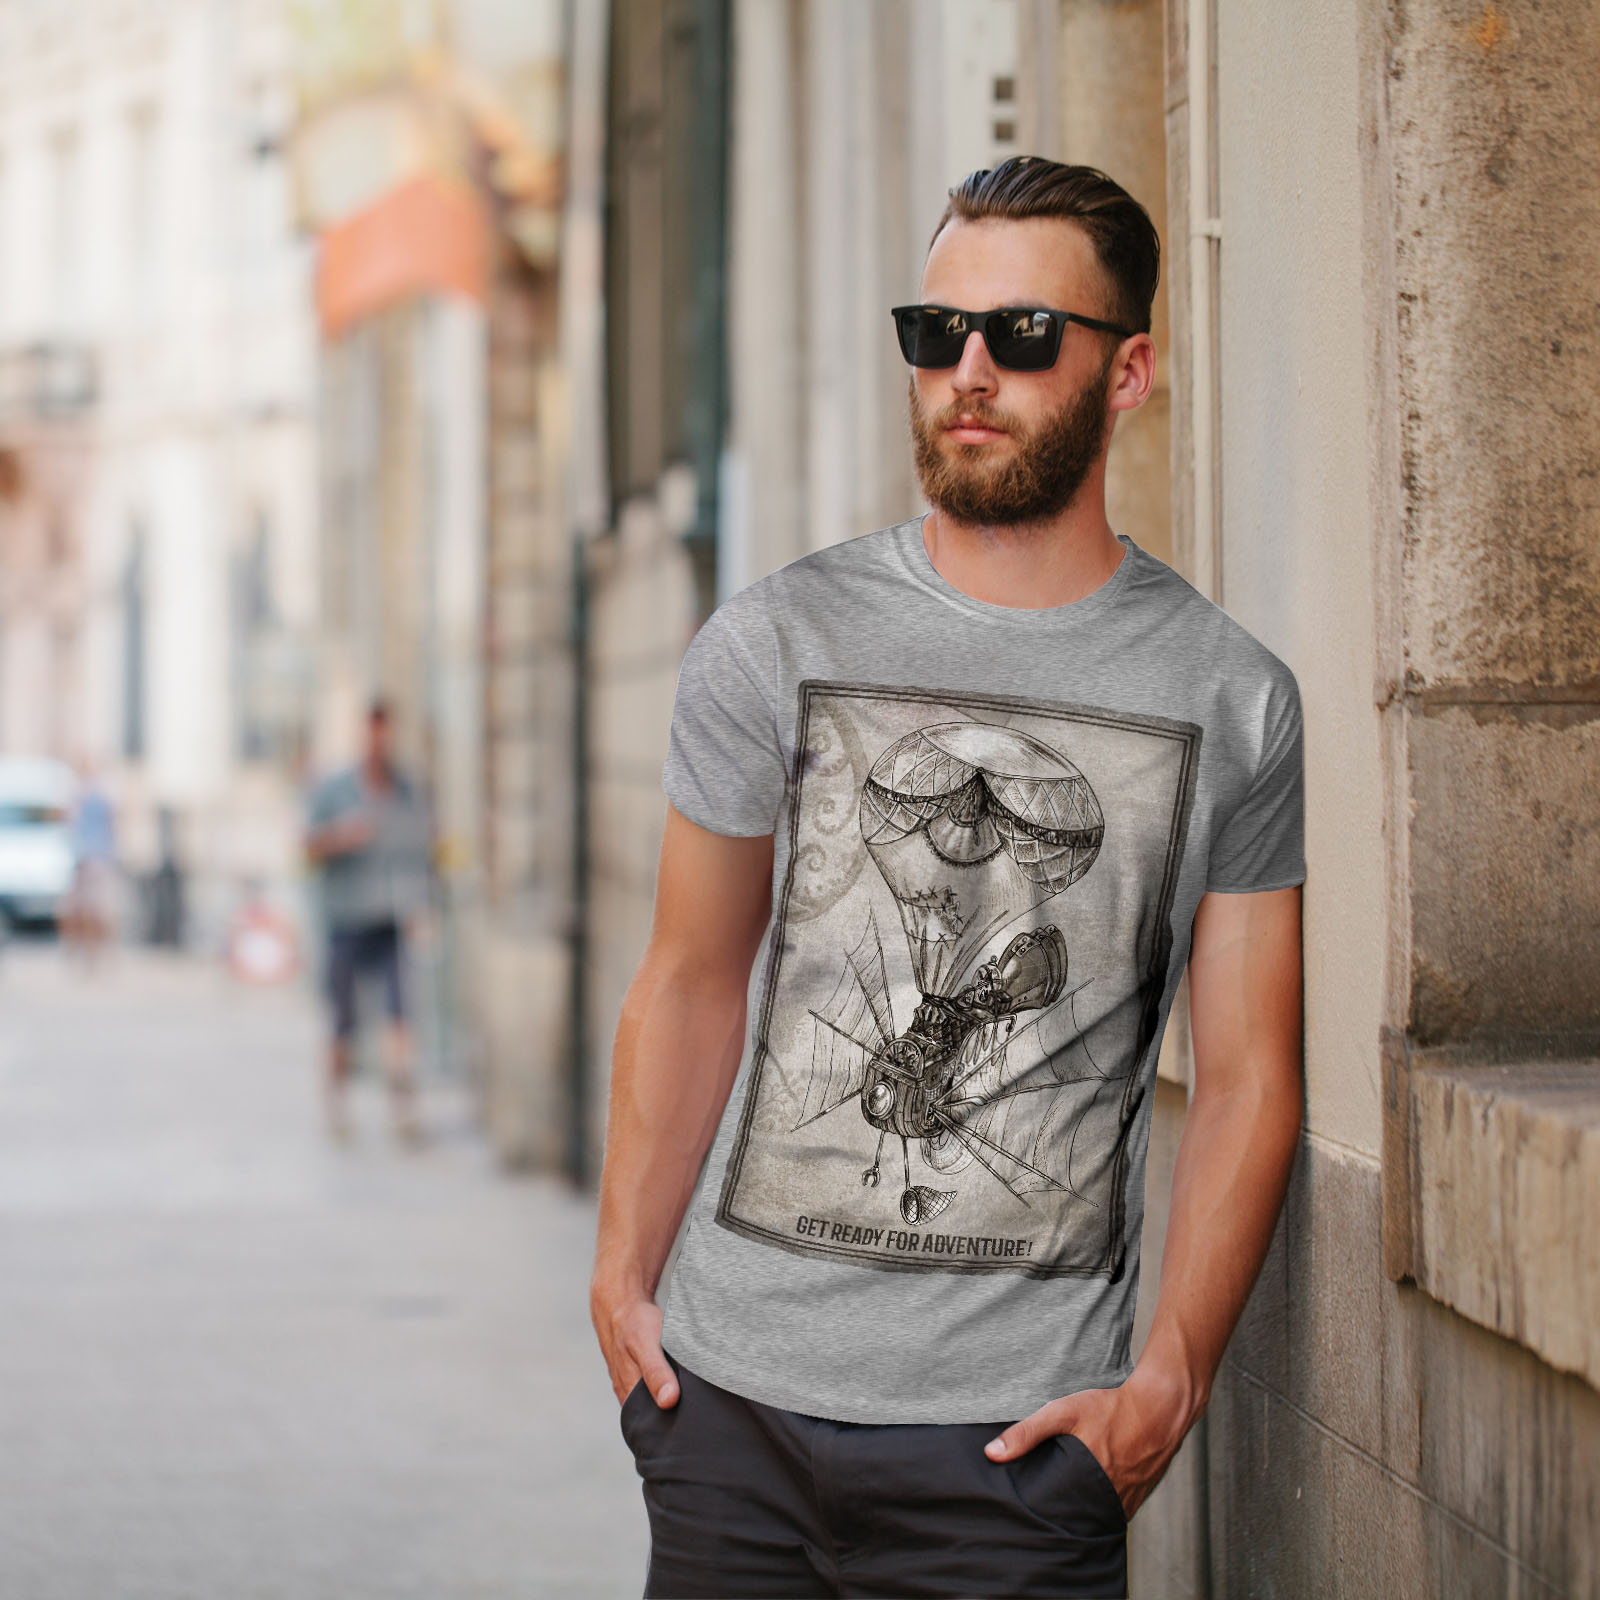 Wellcoda-Adventure-Hipster-Mens-T-shirt-Adventure-Graphic-Design-Printed-Tee